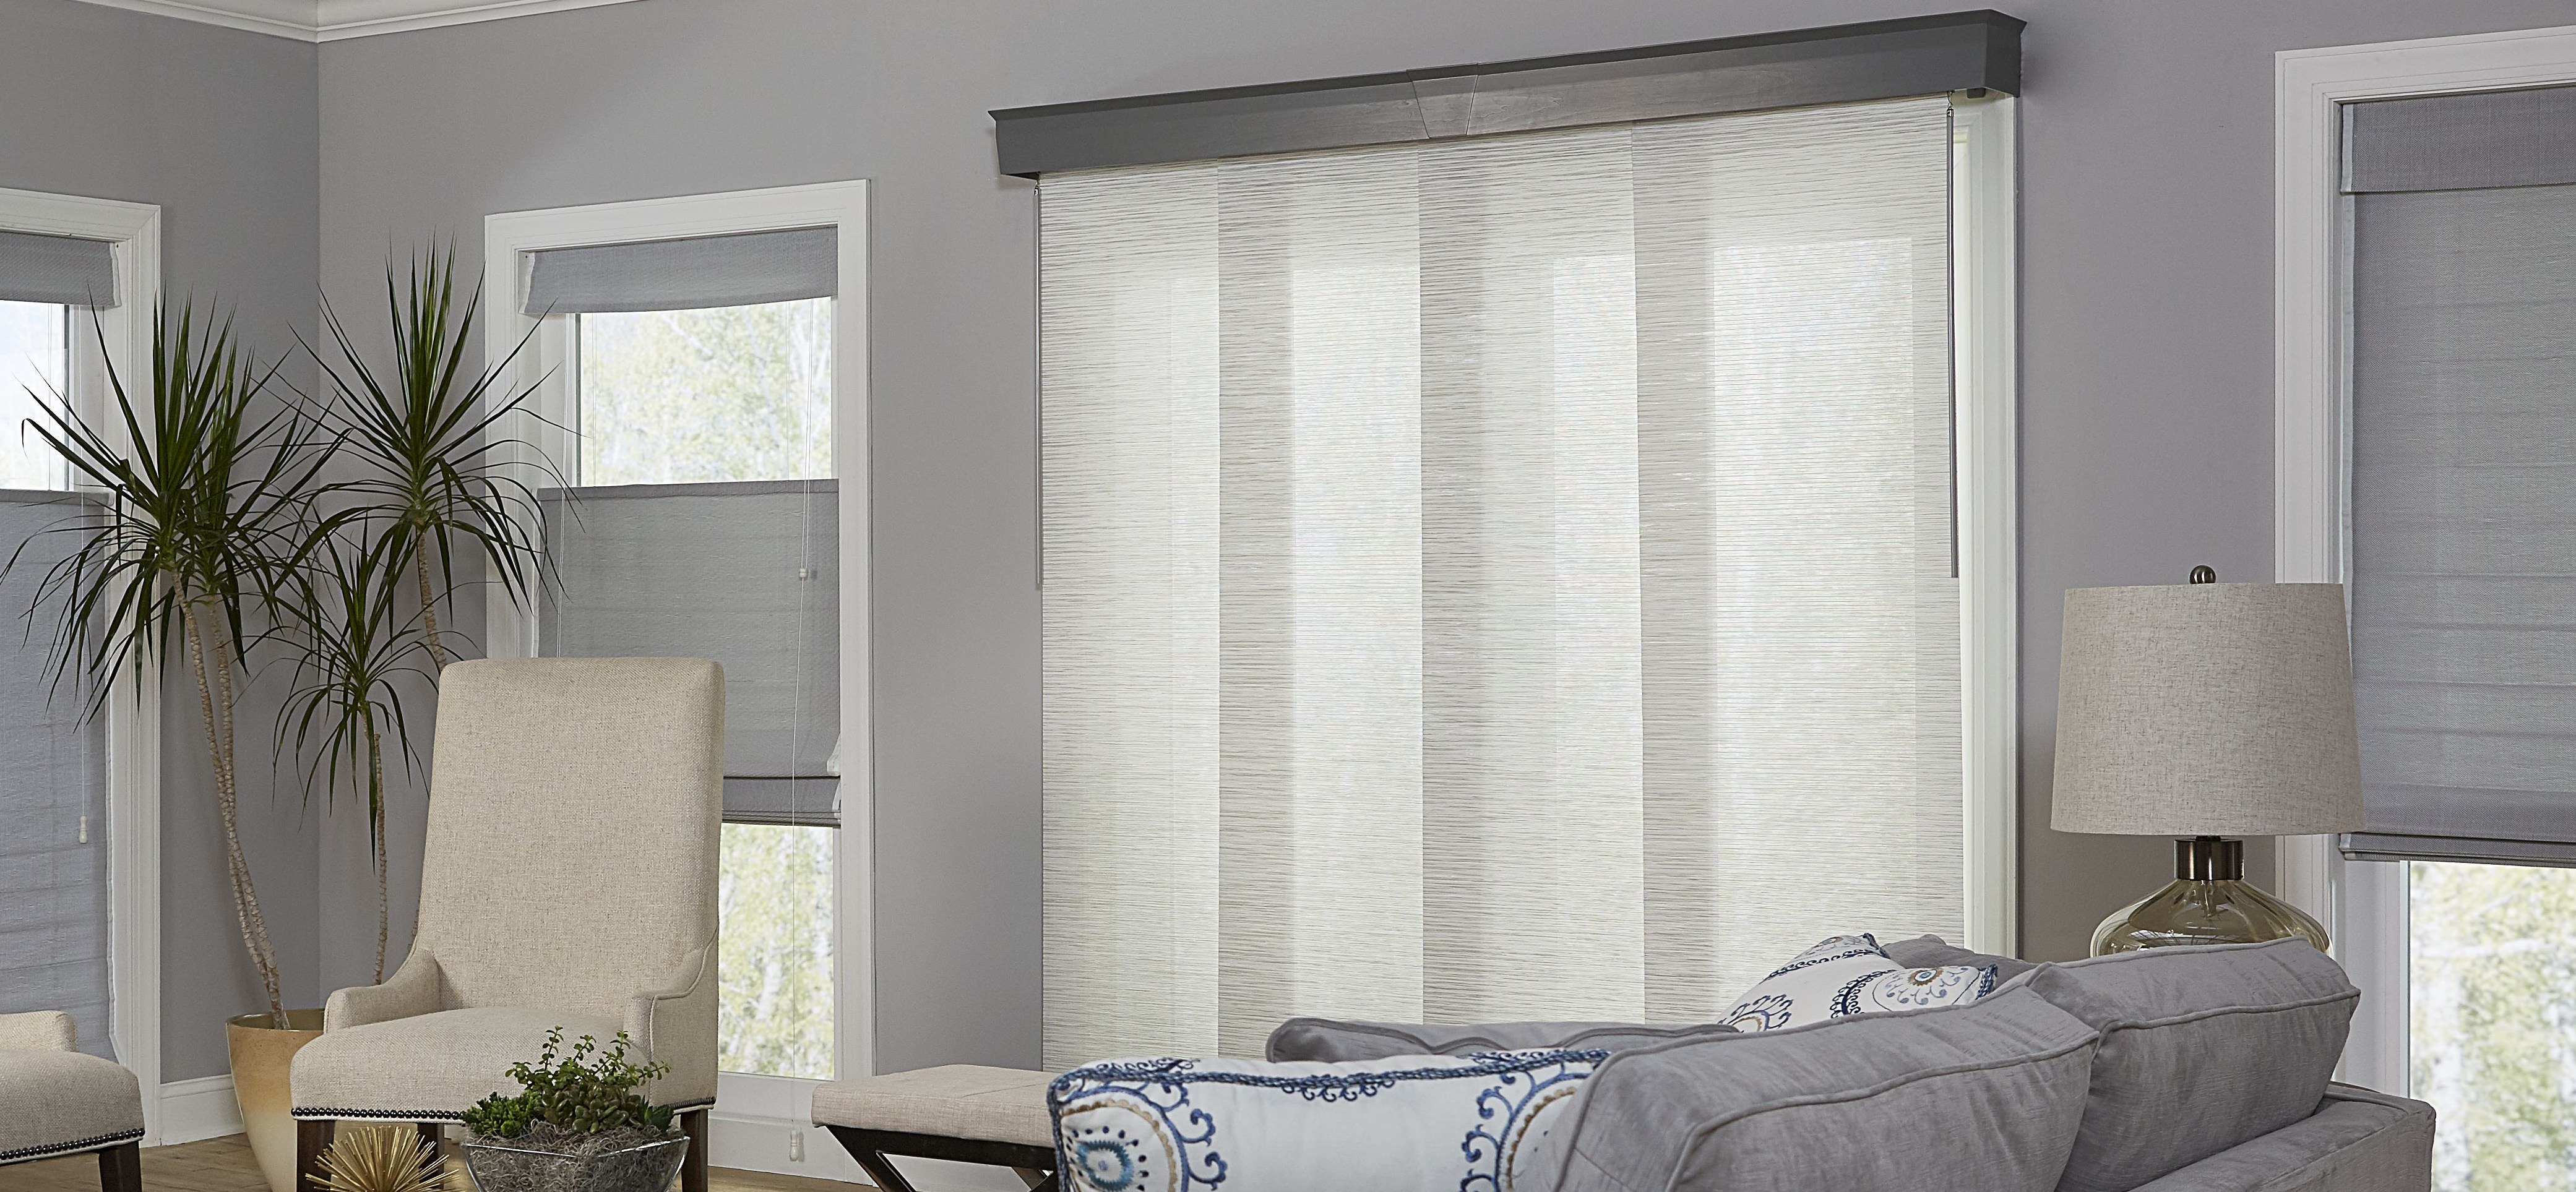 Elegant Curtains for Sliding Glass Doors with Vertical Blinds